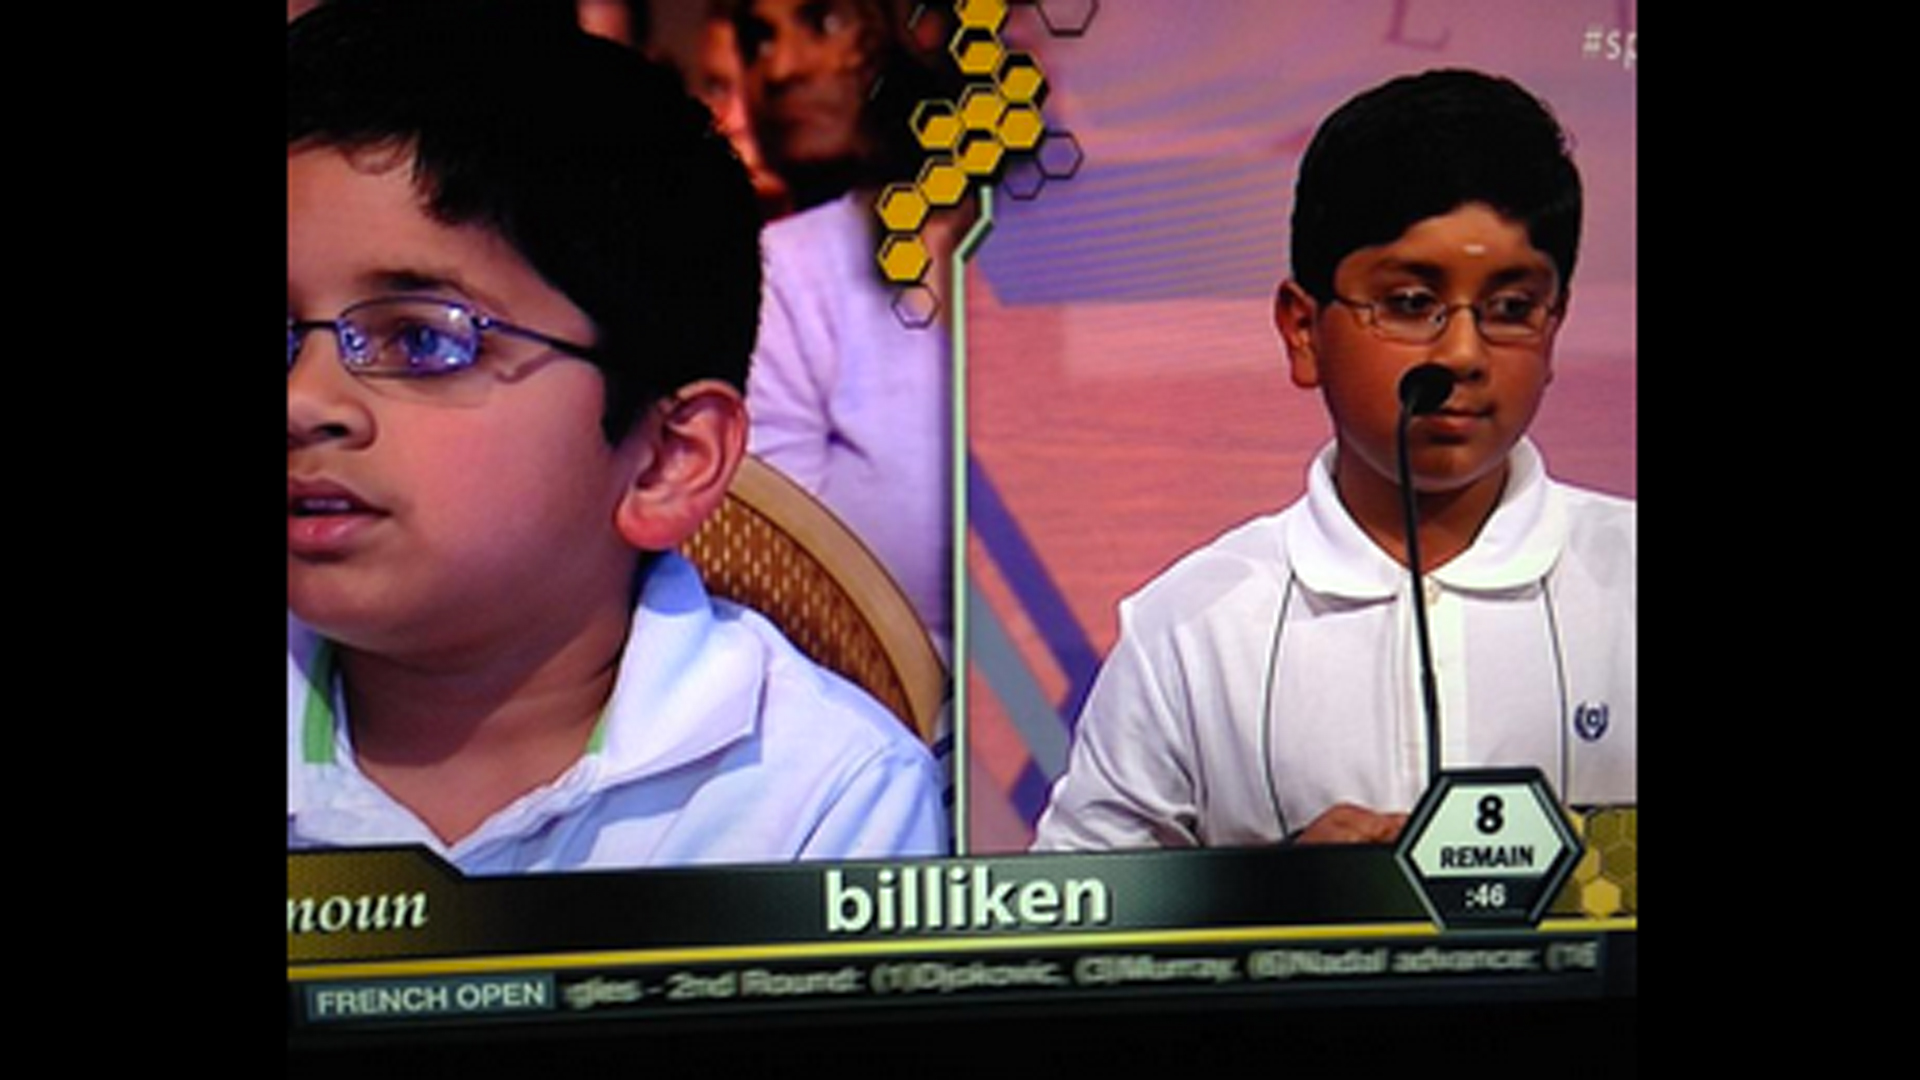 Saint Louis Billikens get shoutout at Scripps Spelling Bee